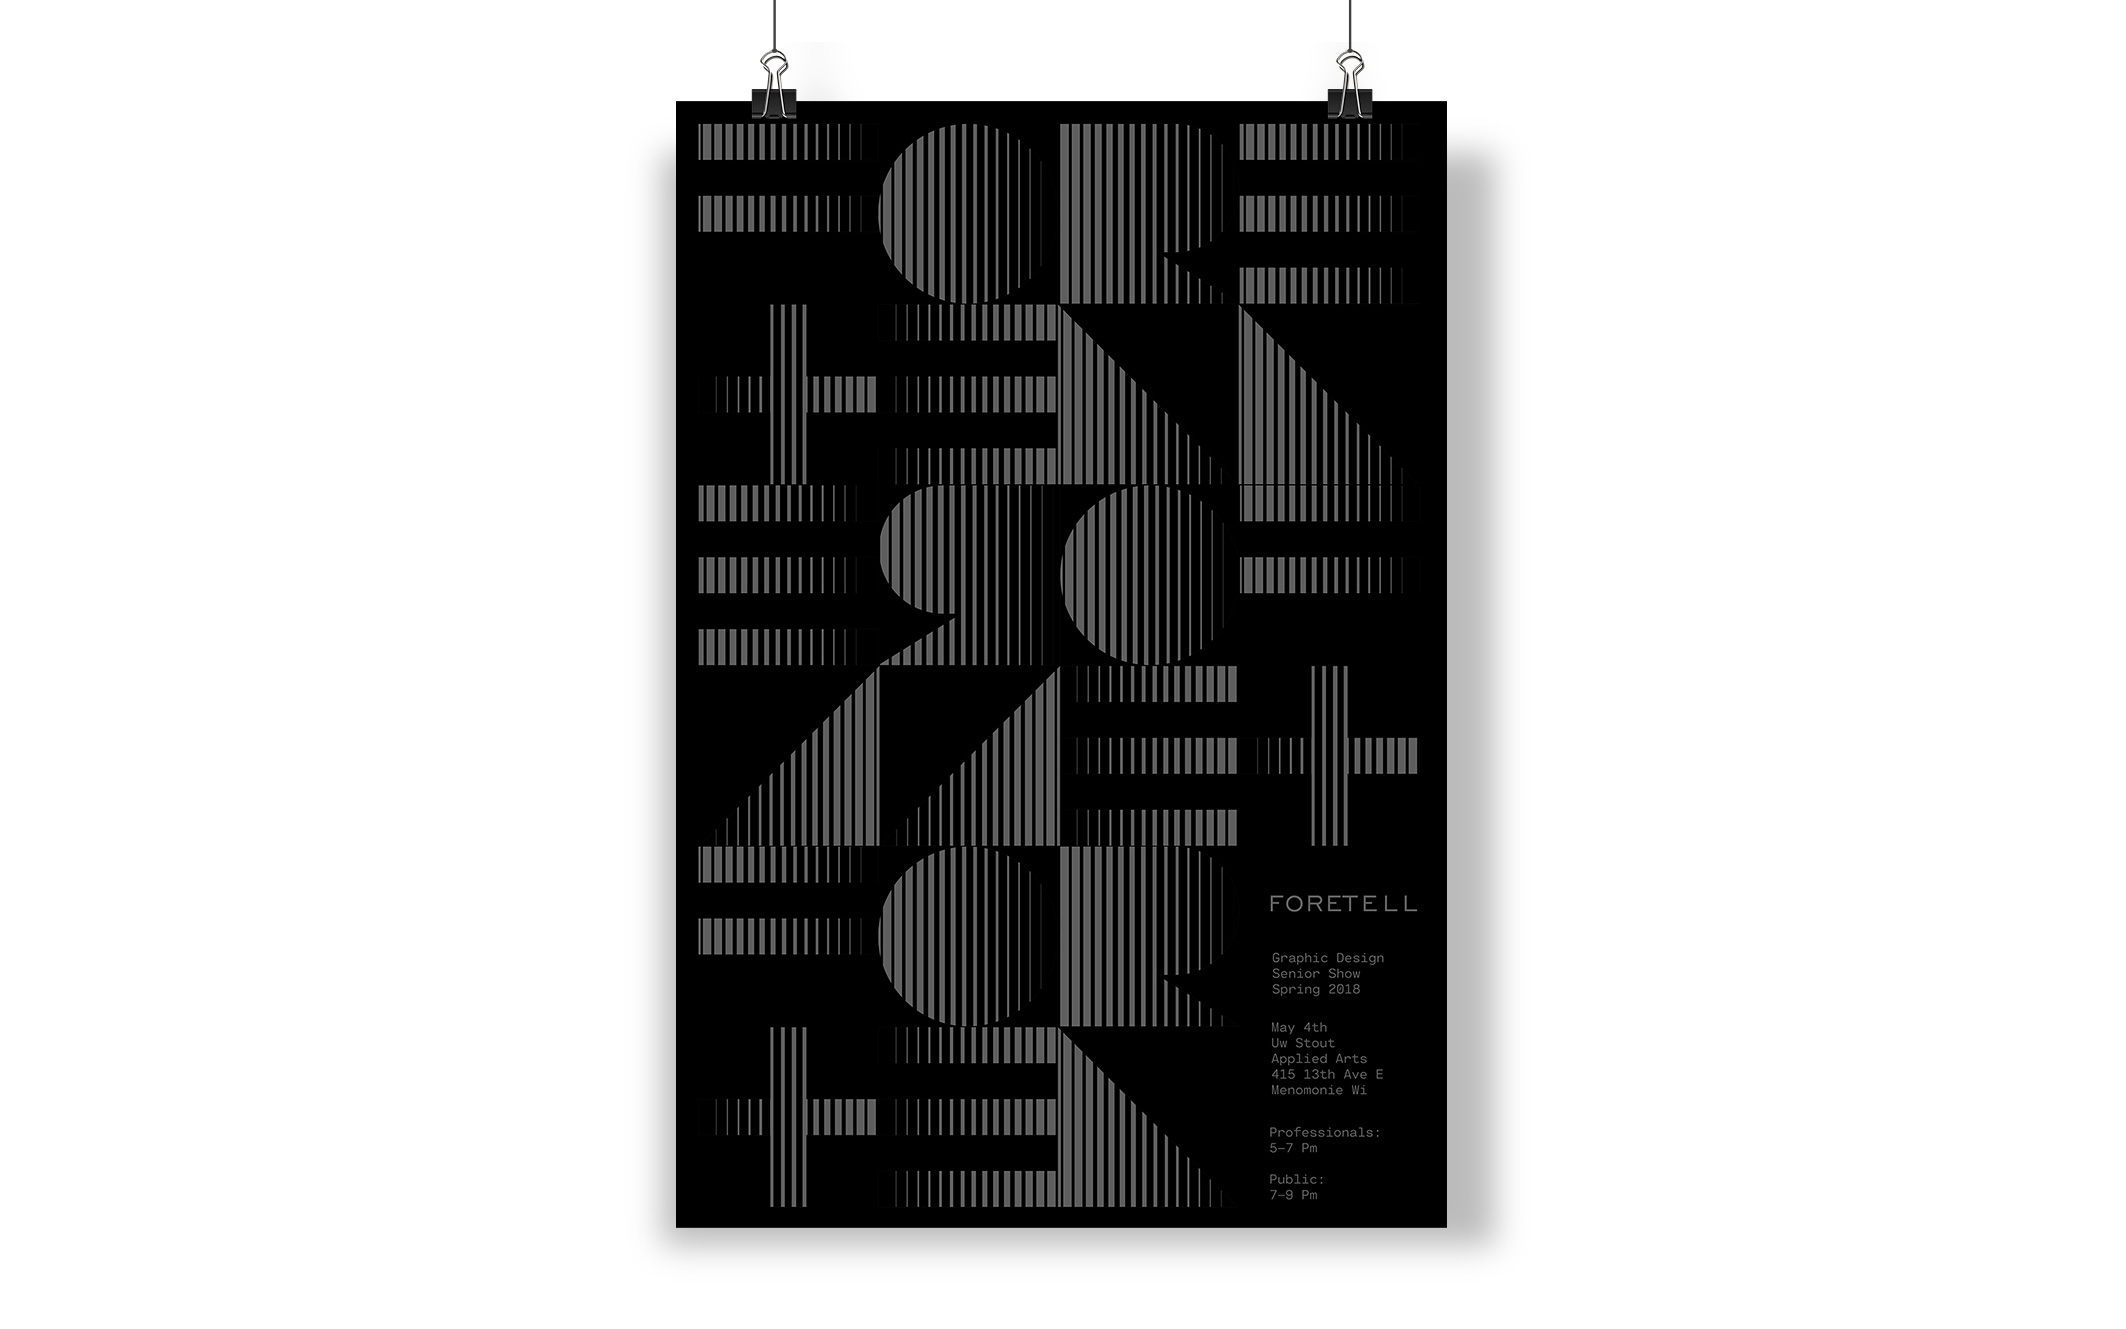 Poster Design by Daniel Wagner